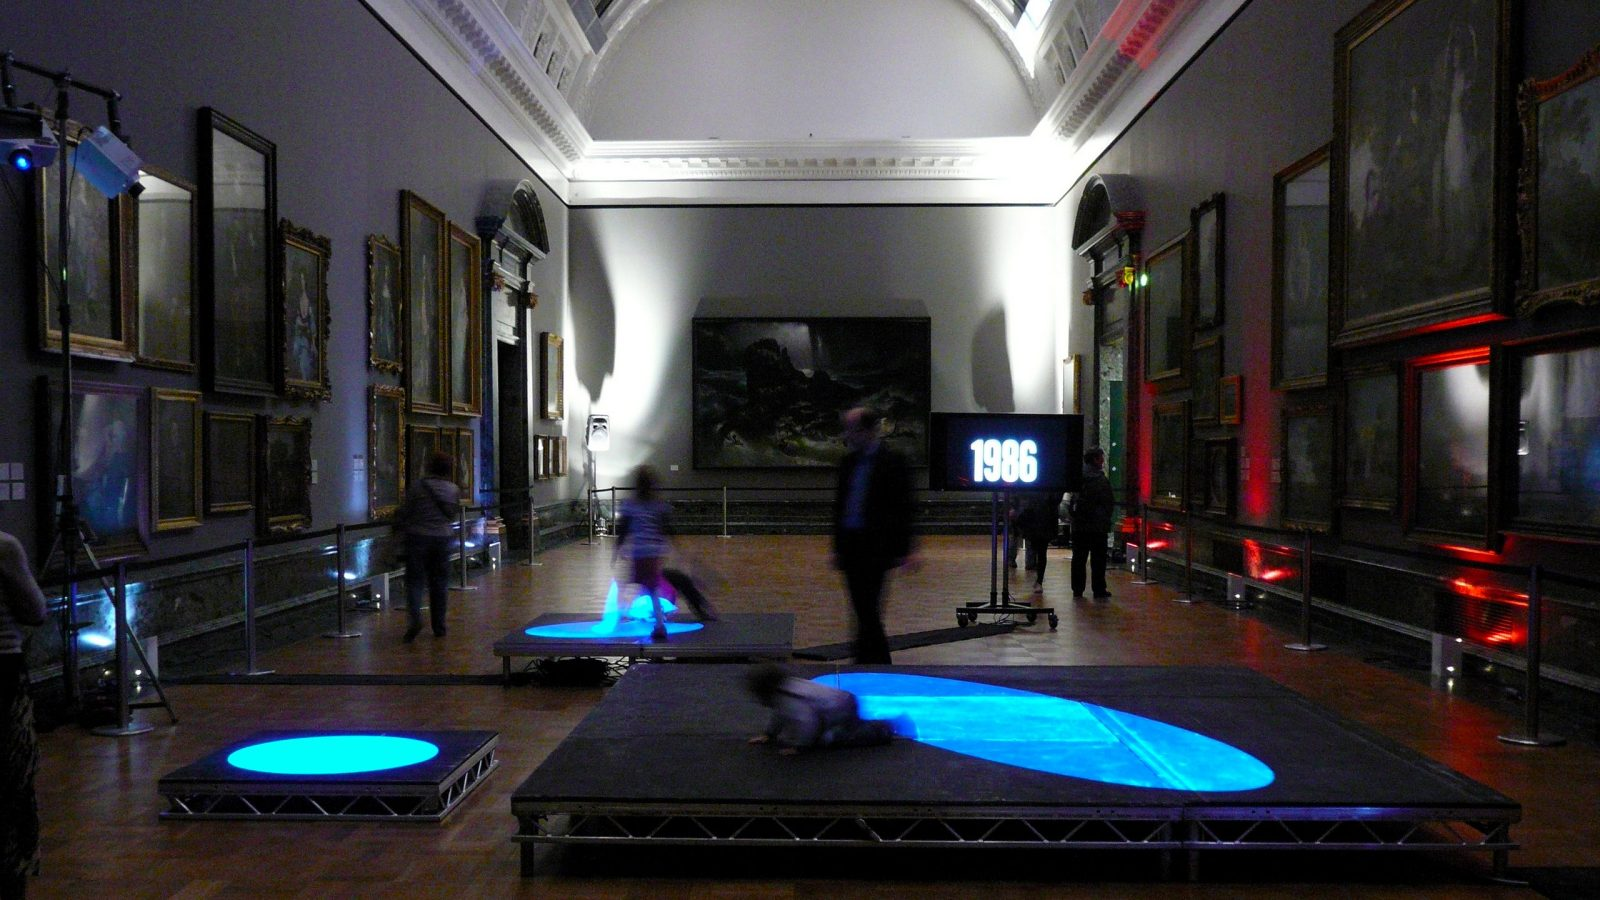 The Redistribution of Wealth installed at Tate Britain in 2012